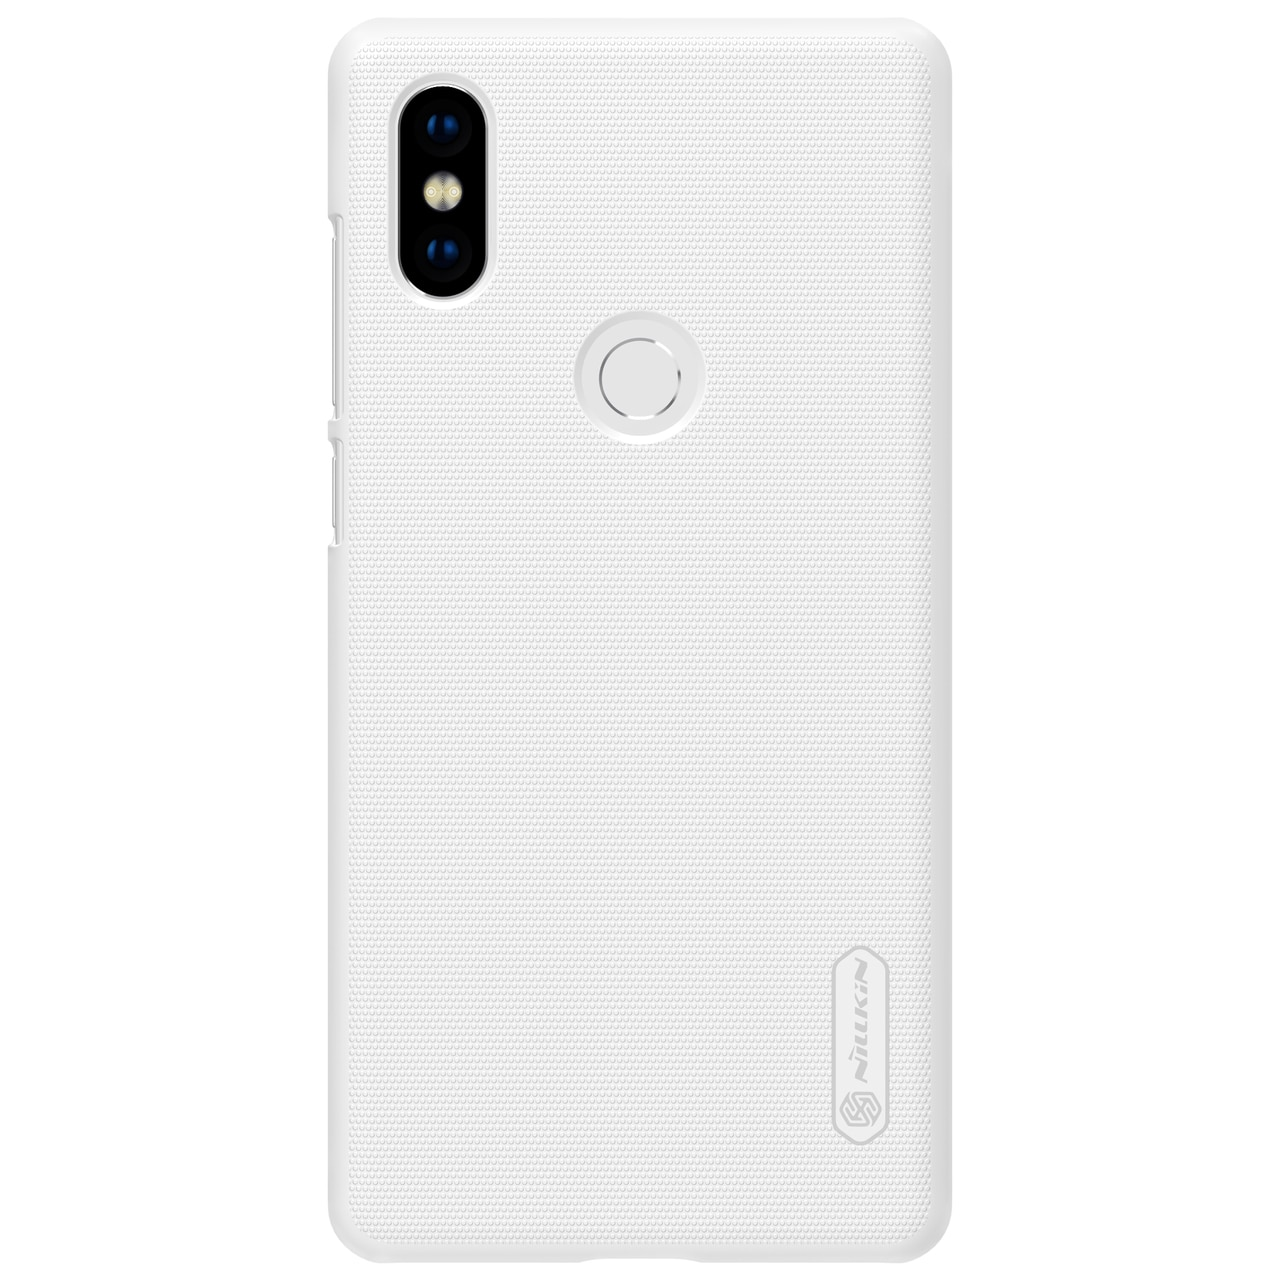 Mi Mix 2S Frosted Shield Hard Back Cover by Nillkin - White